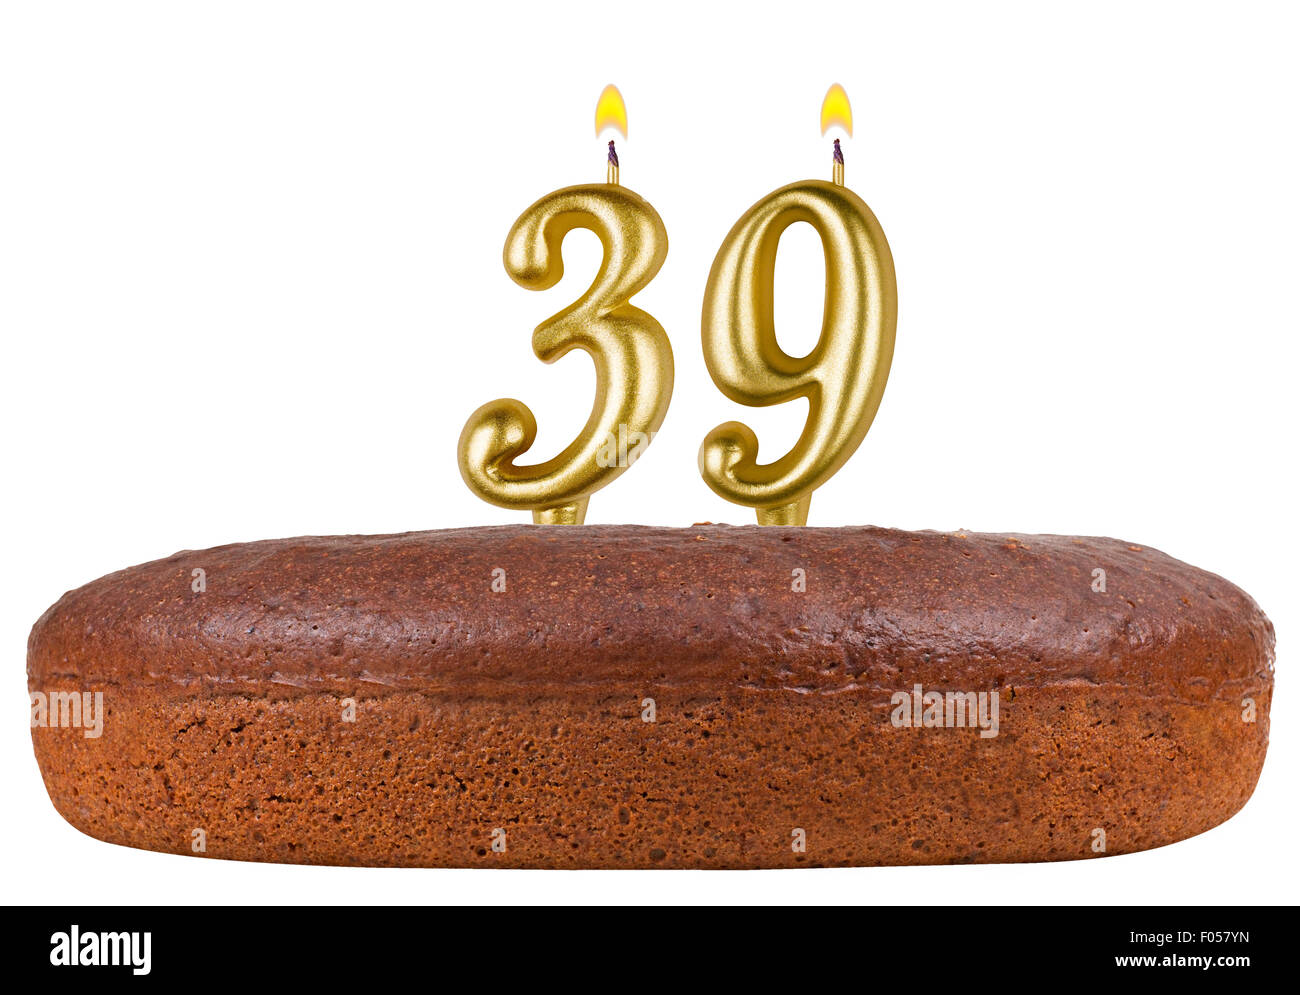 Birthday Cake With Candles Number 39 Isolated On White Background